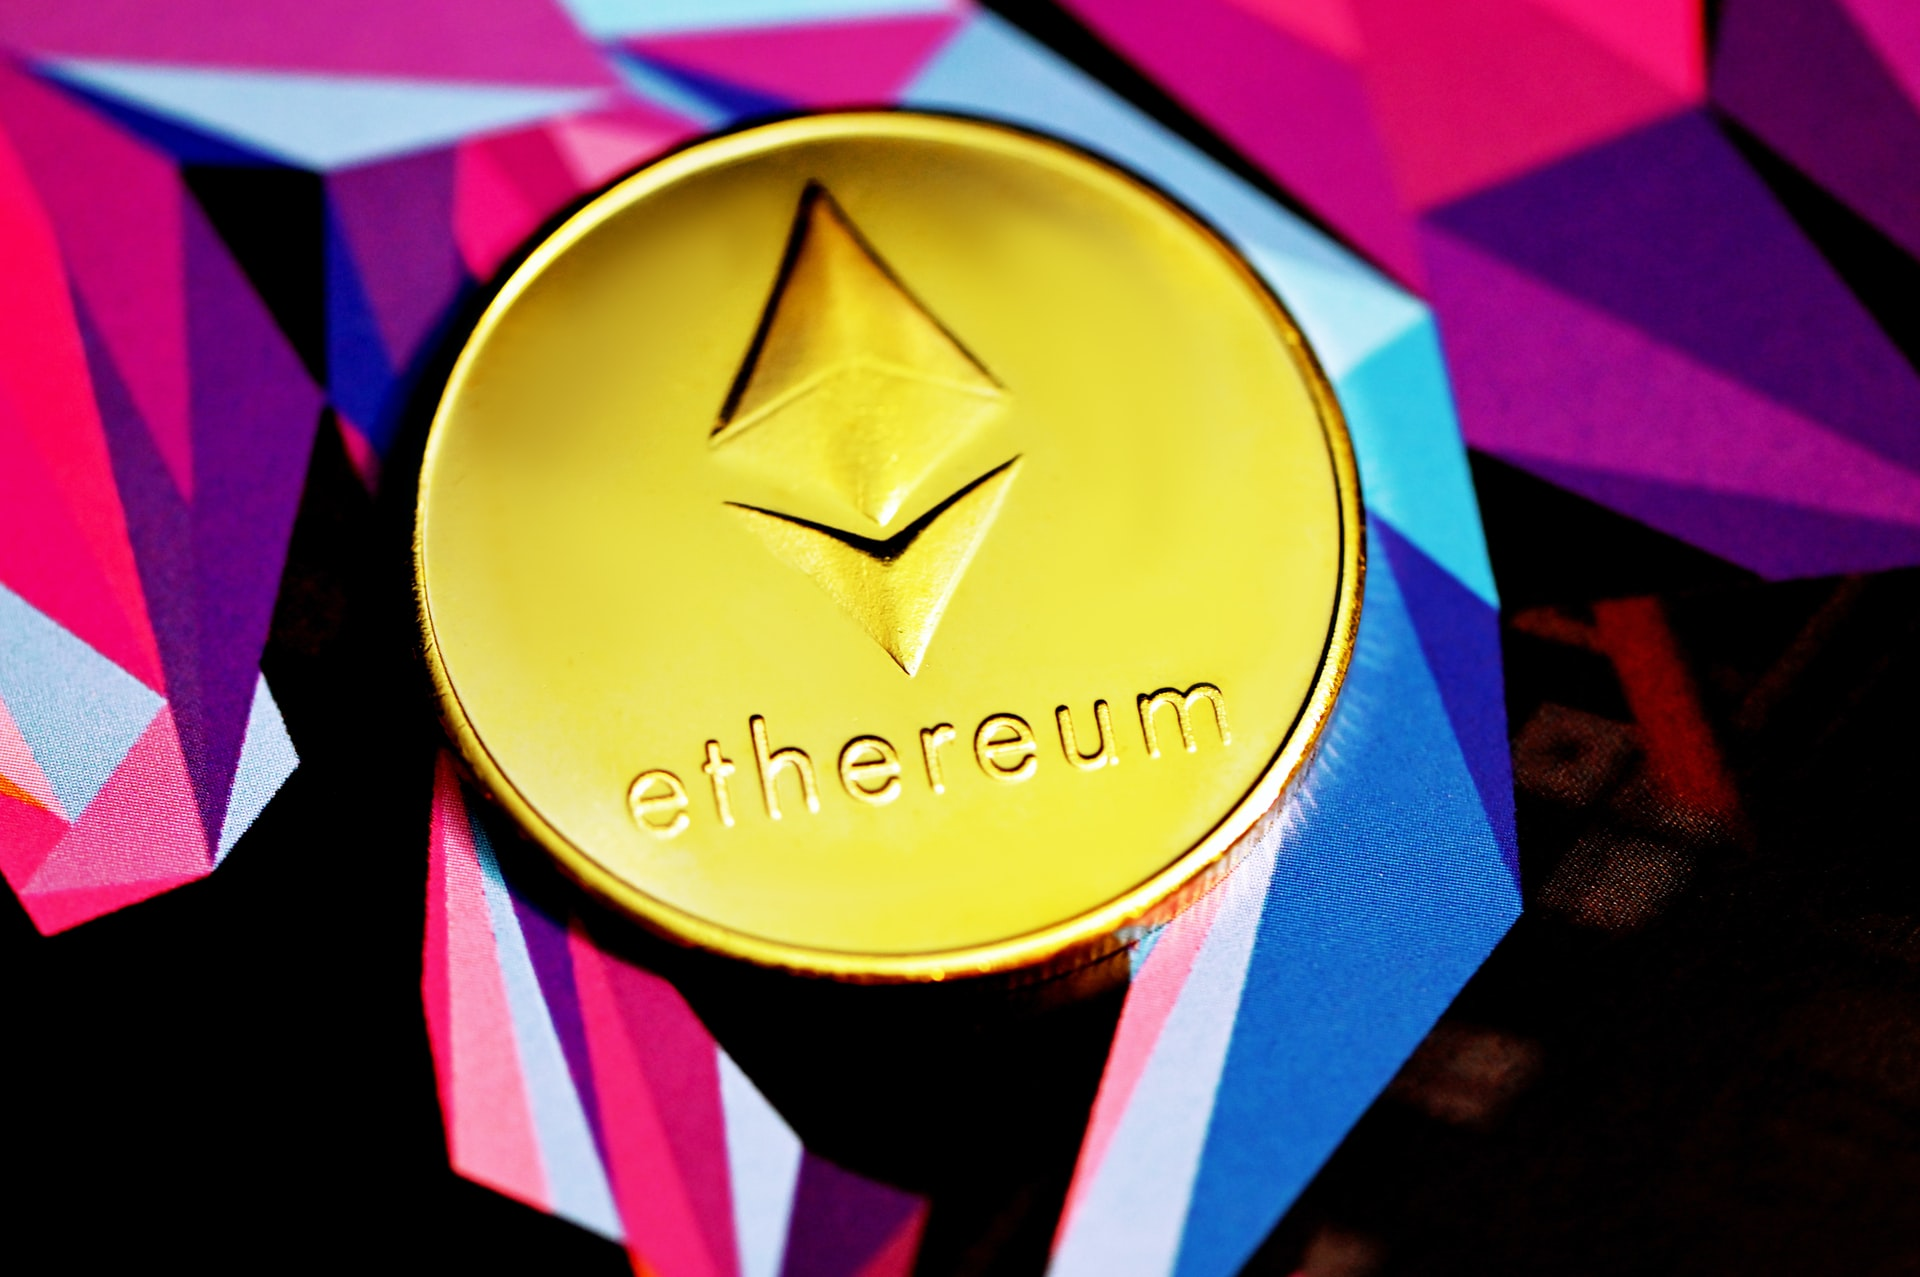 Ethereum Demand for DeFi, Staking Expands as Exchange Supply Continues Shrinking